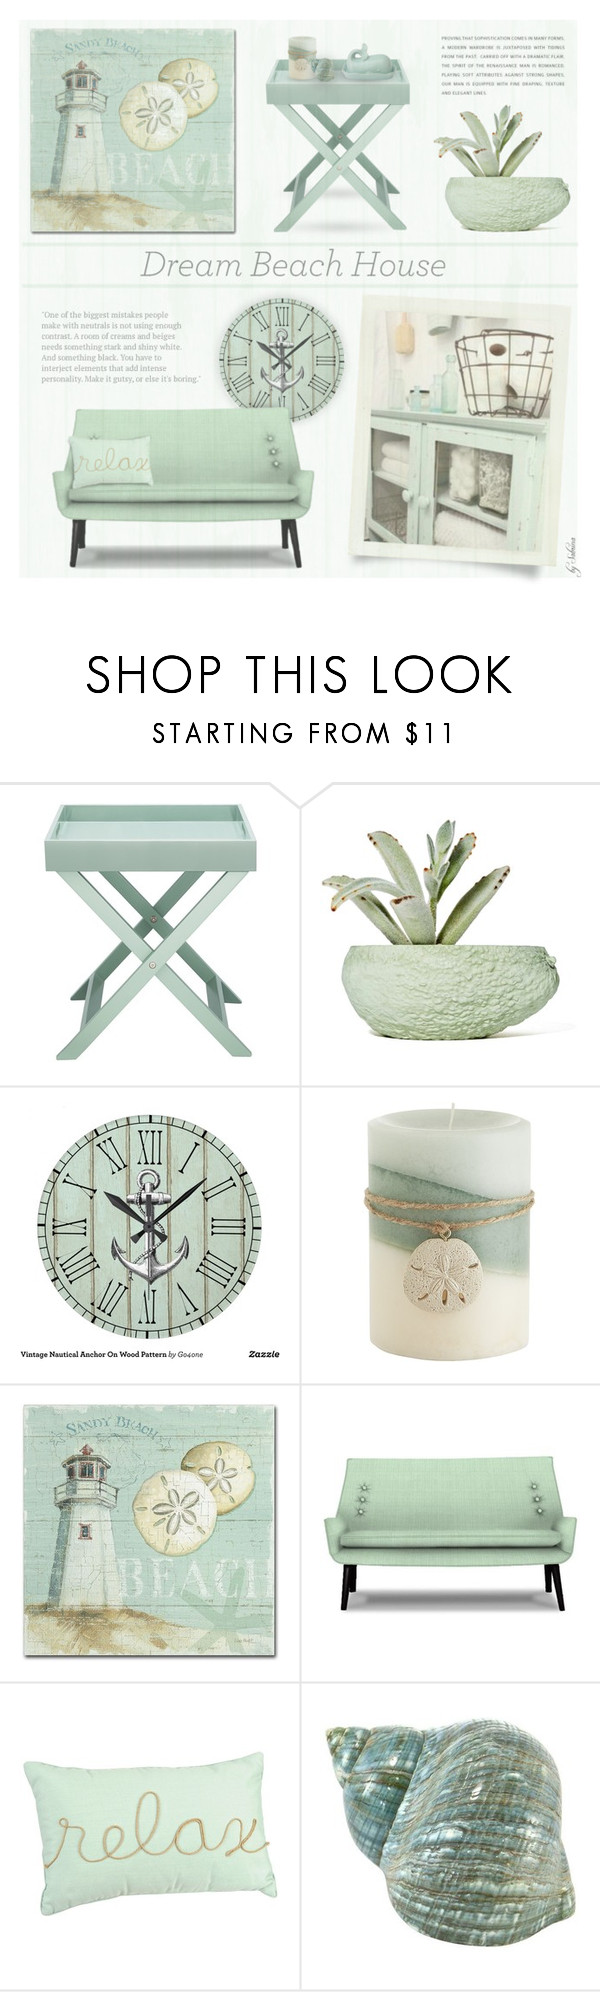 """""""201. Dream Beach House"""" by xiandrina ❤ liked on Polyvore featuring interior, interiors, interior design, home, home decor, interior decorating, Chen Chen & Kai Williams, Pier 1 Imports, Trademark Fine Art and Jonathan Adler"""